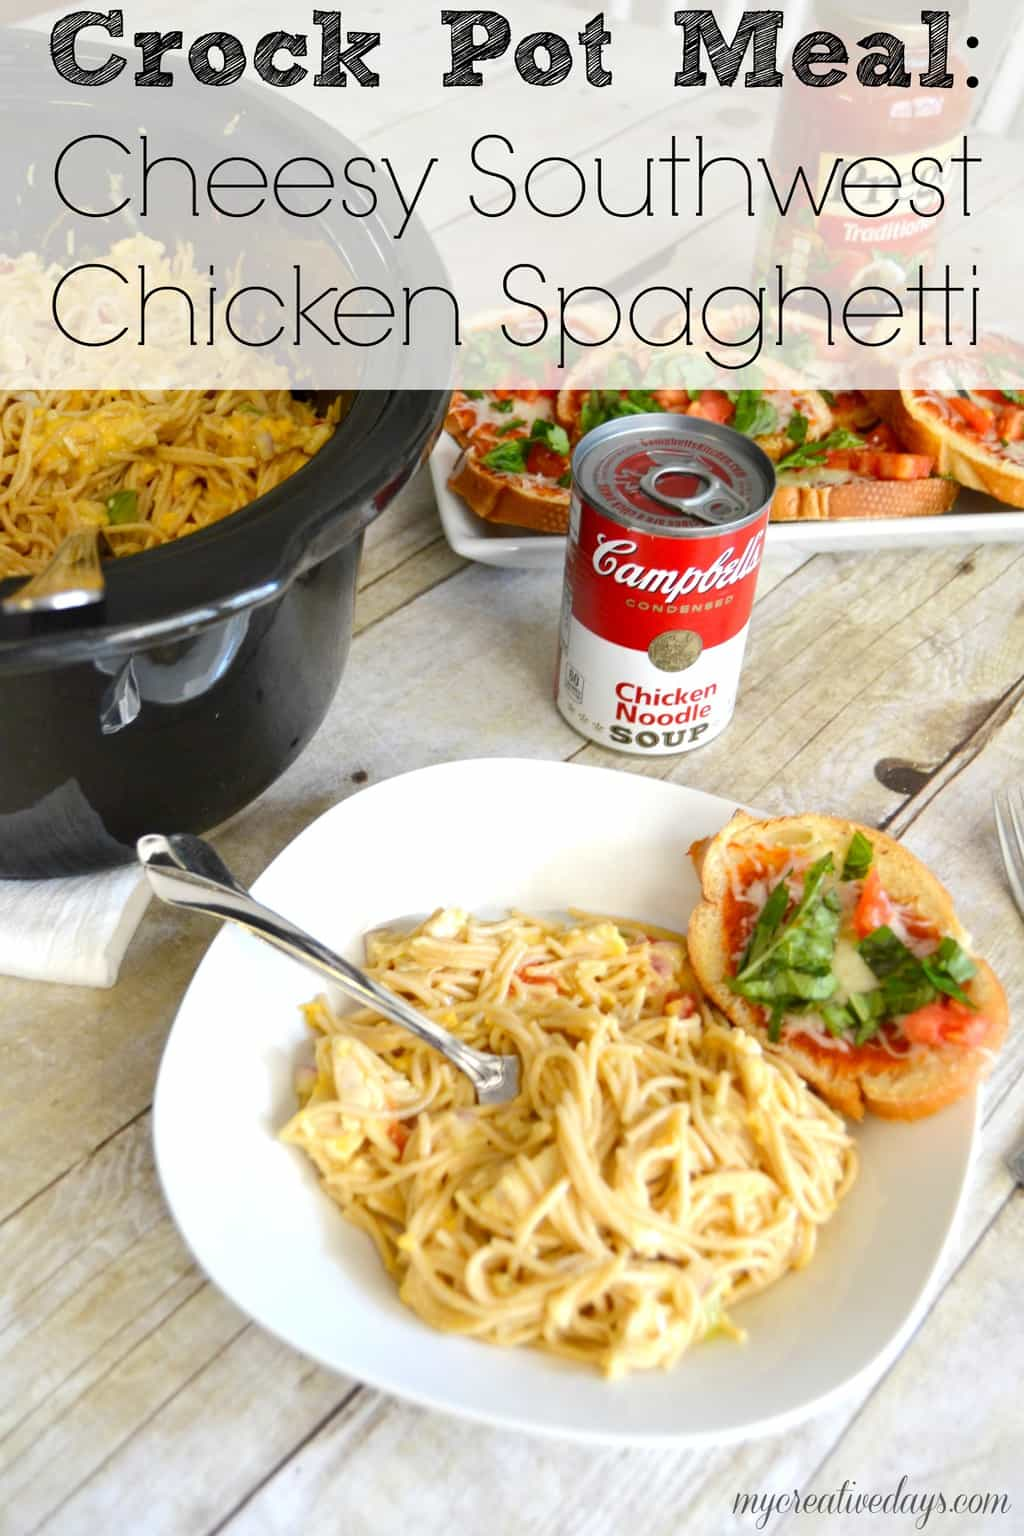 Slow cooker meal cheesy southwest chicken spaghetti my creative days Sw meals